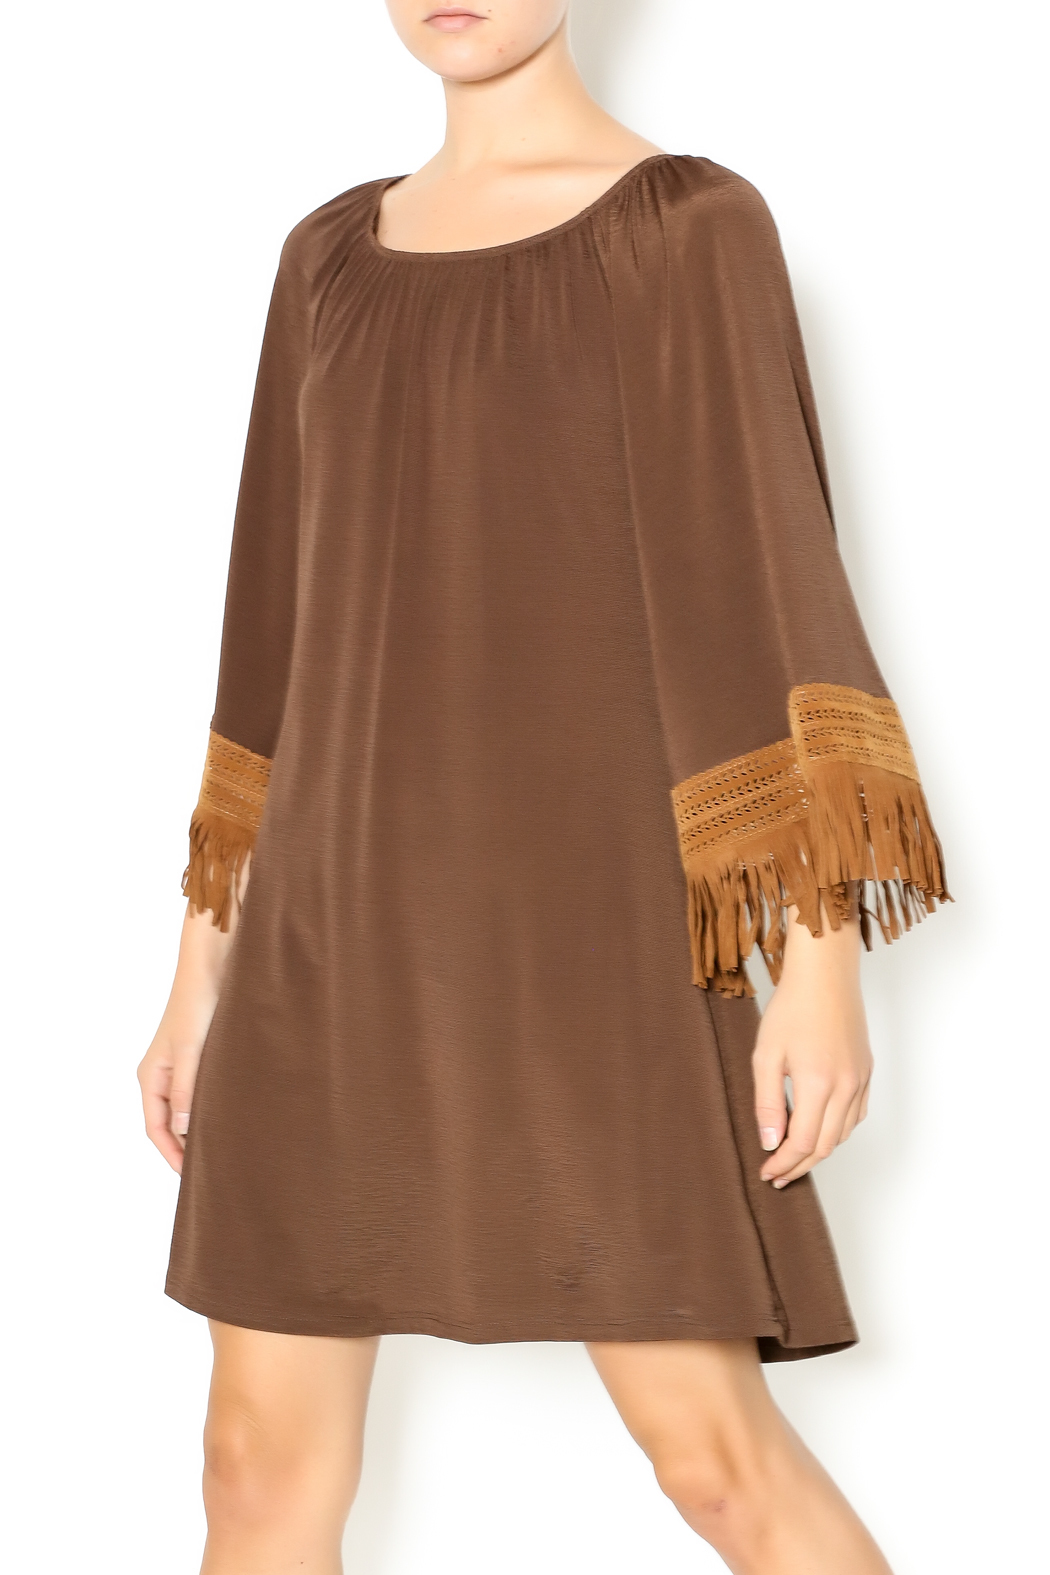 2B Together Fringe Sleeved Dress from Texas by Uptown Chic ...